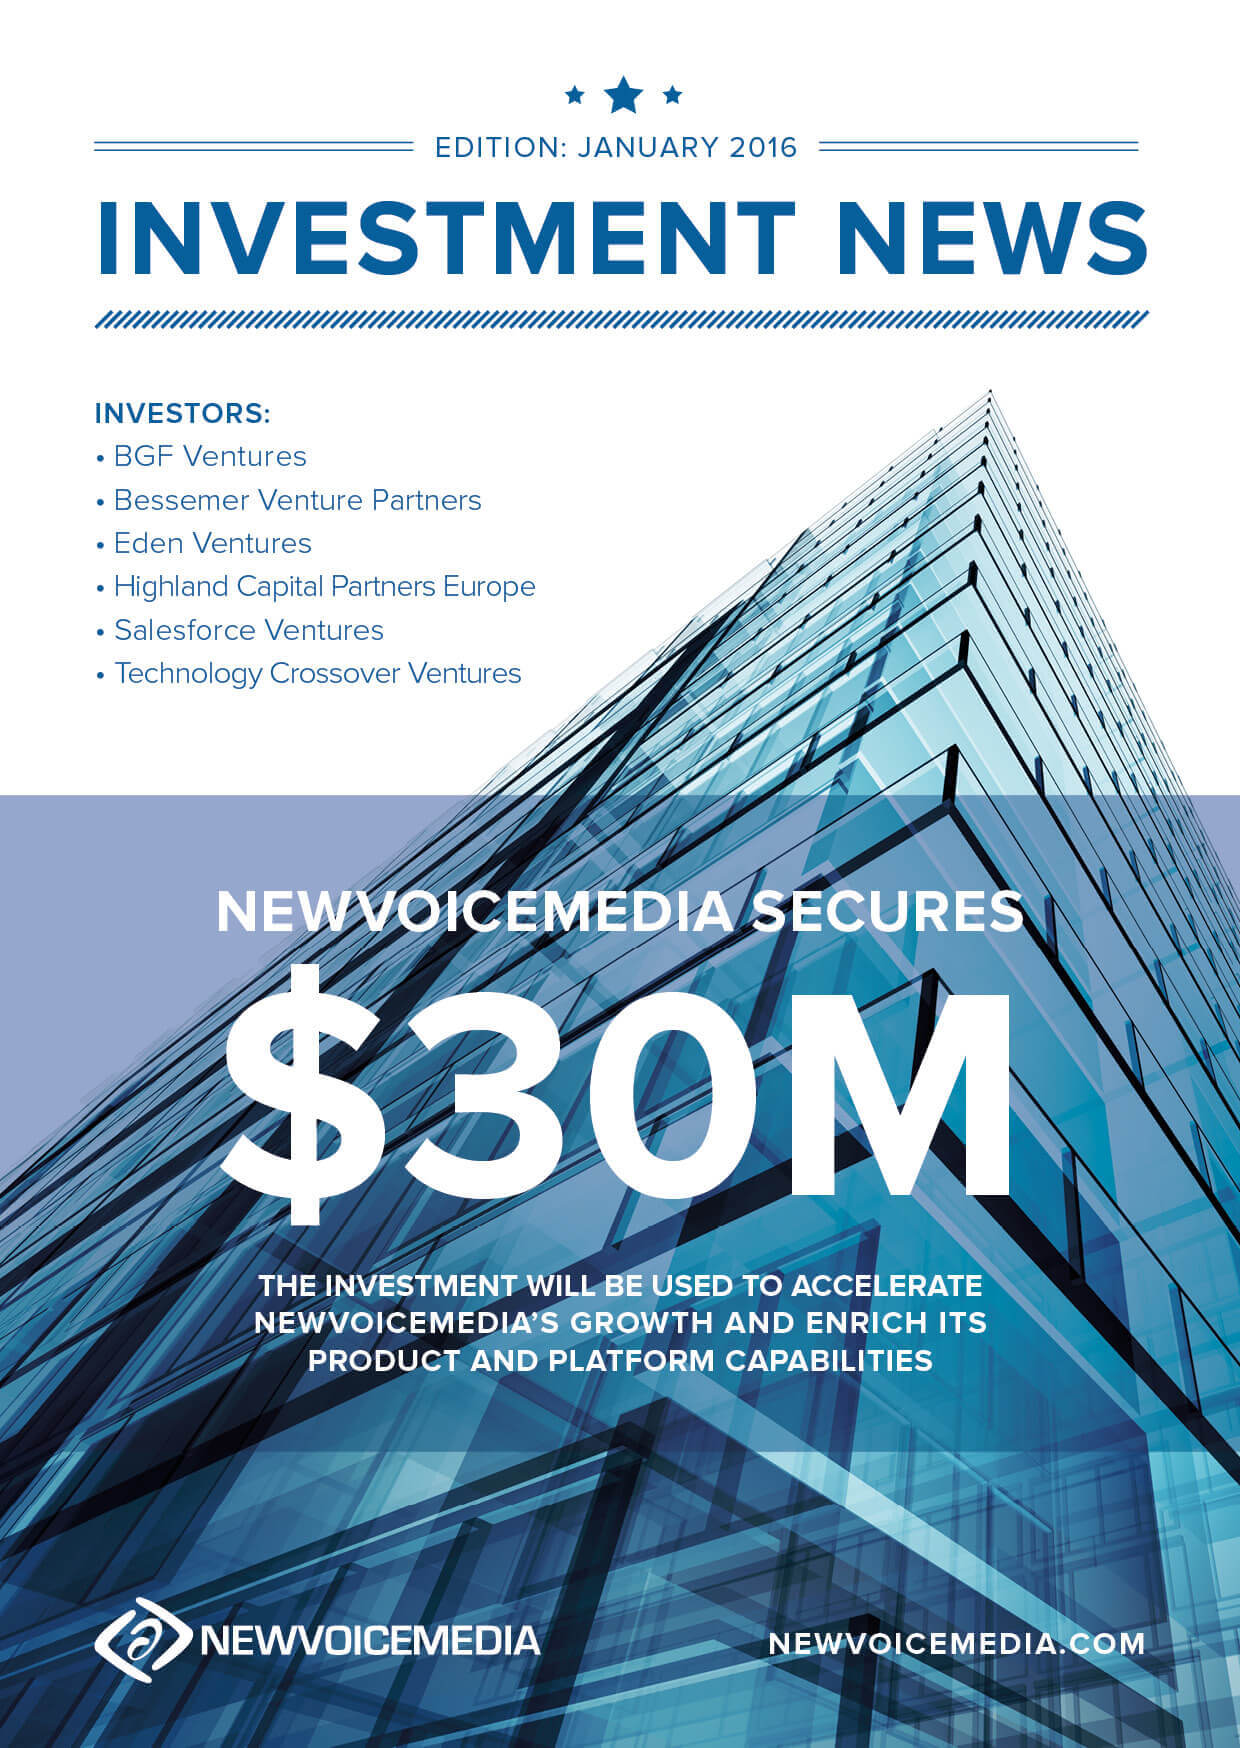 NewVoiceMedia secures $30m investment to accelerate rapid international expansion and innovation